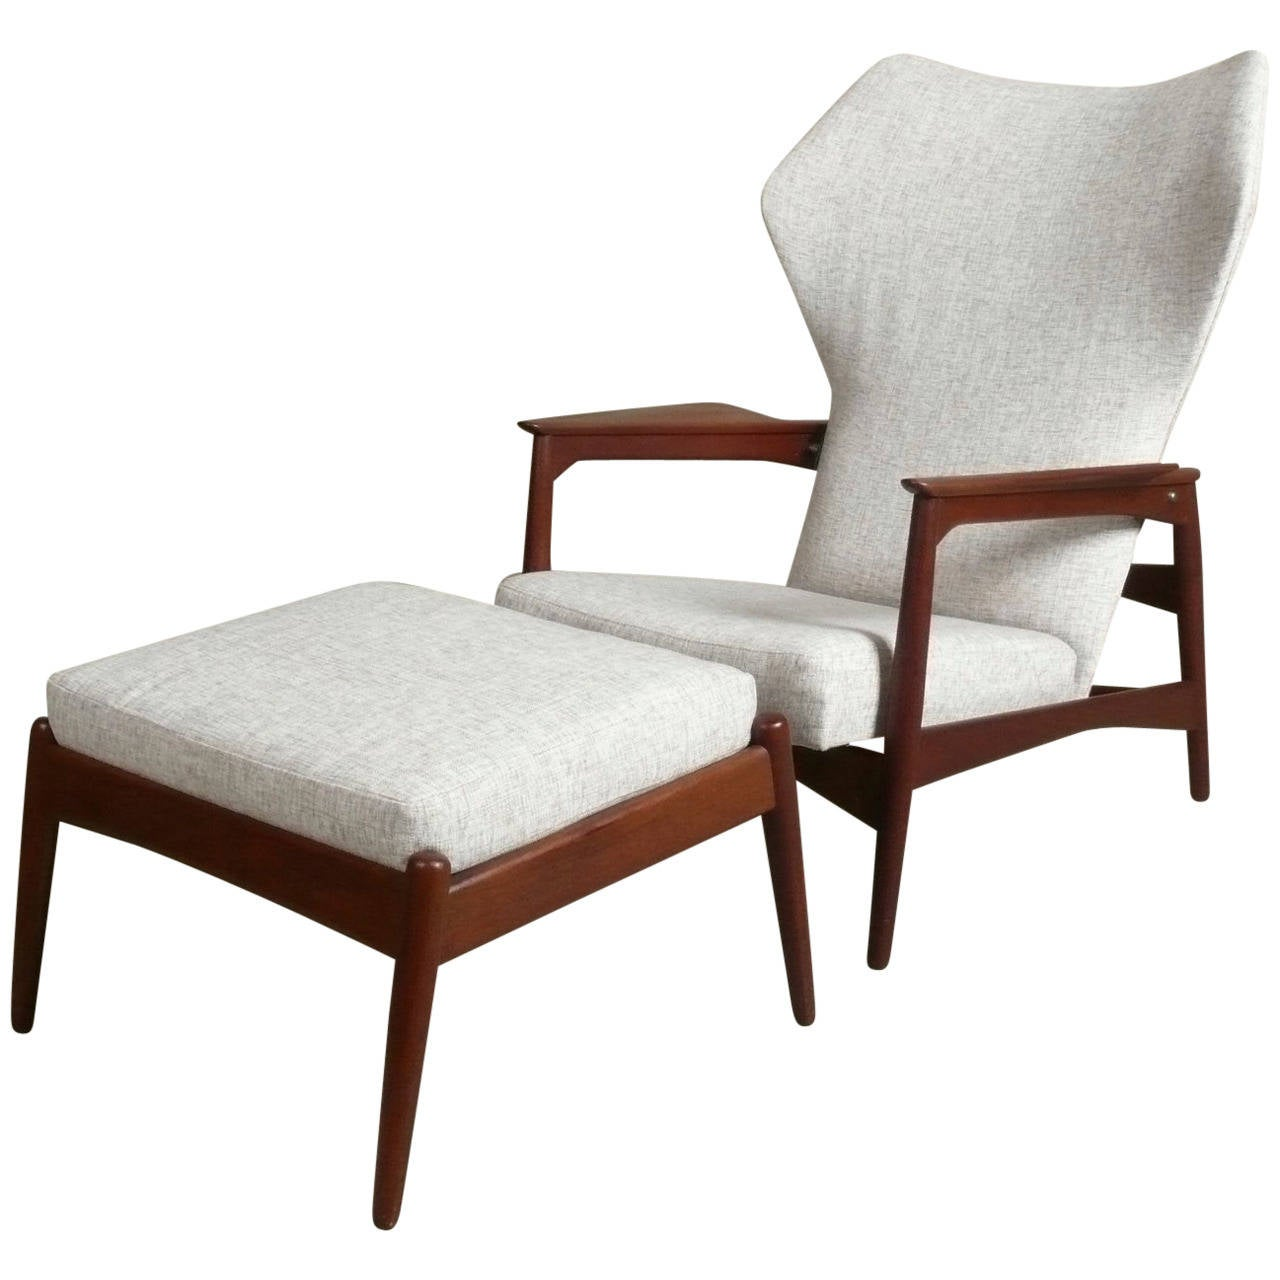 teak lounge chair hammock c 1960 reclining and ottoman from